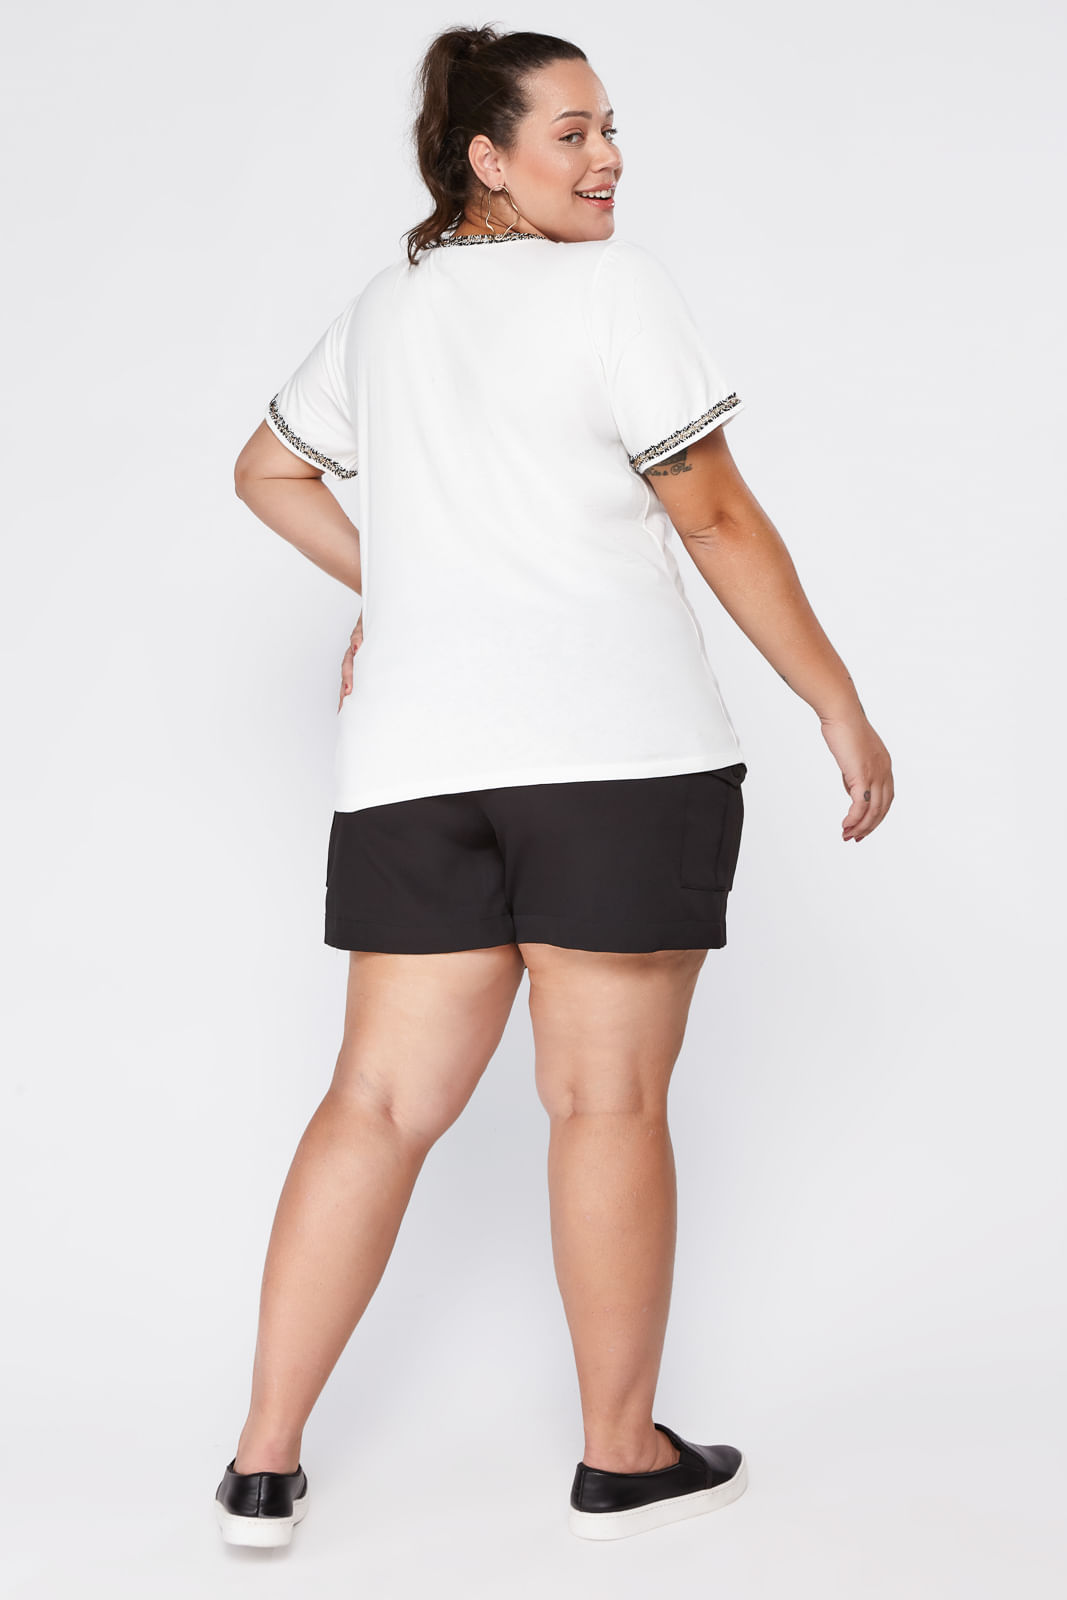 NWB240920_T-Shirt_Plus_Size_Life_Is_Pure_Off_White_7